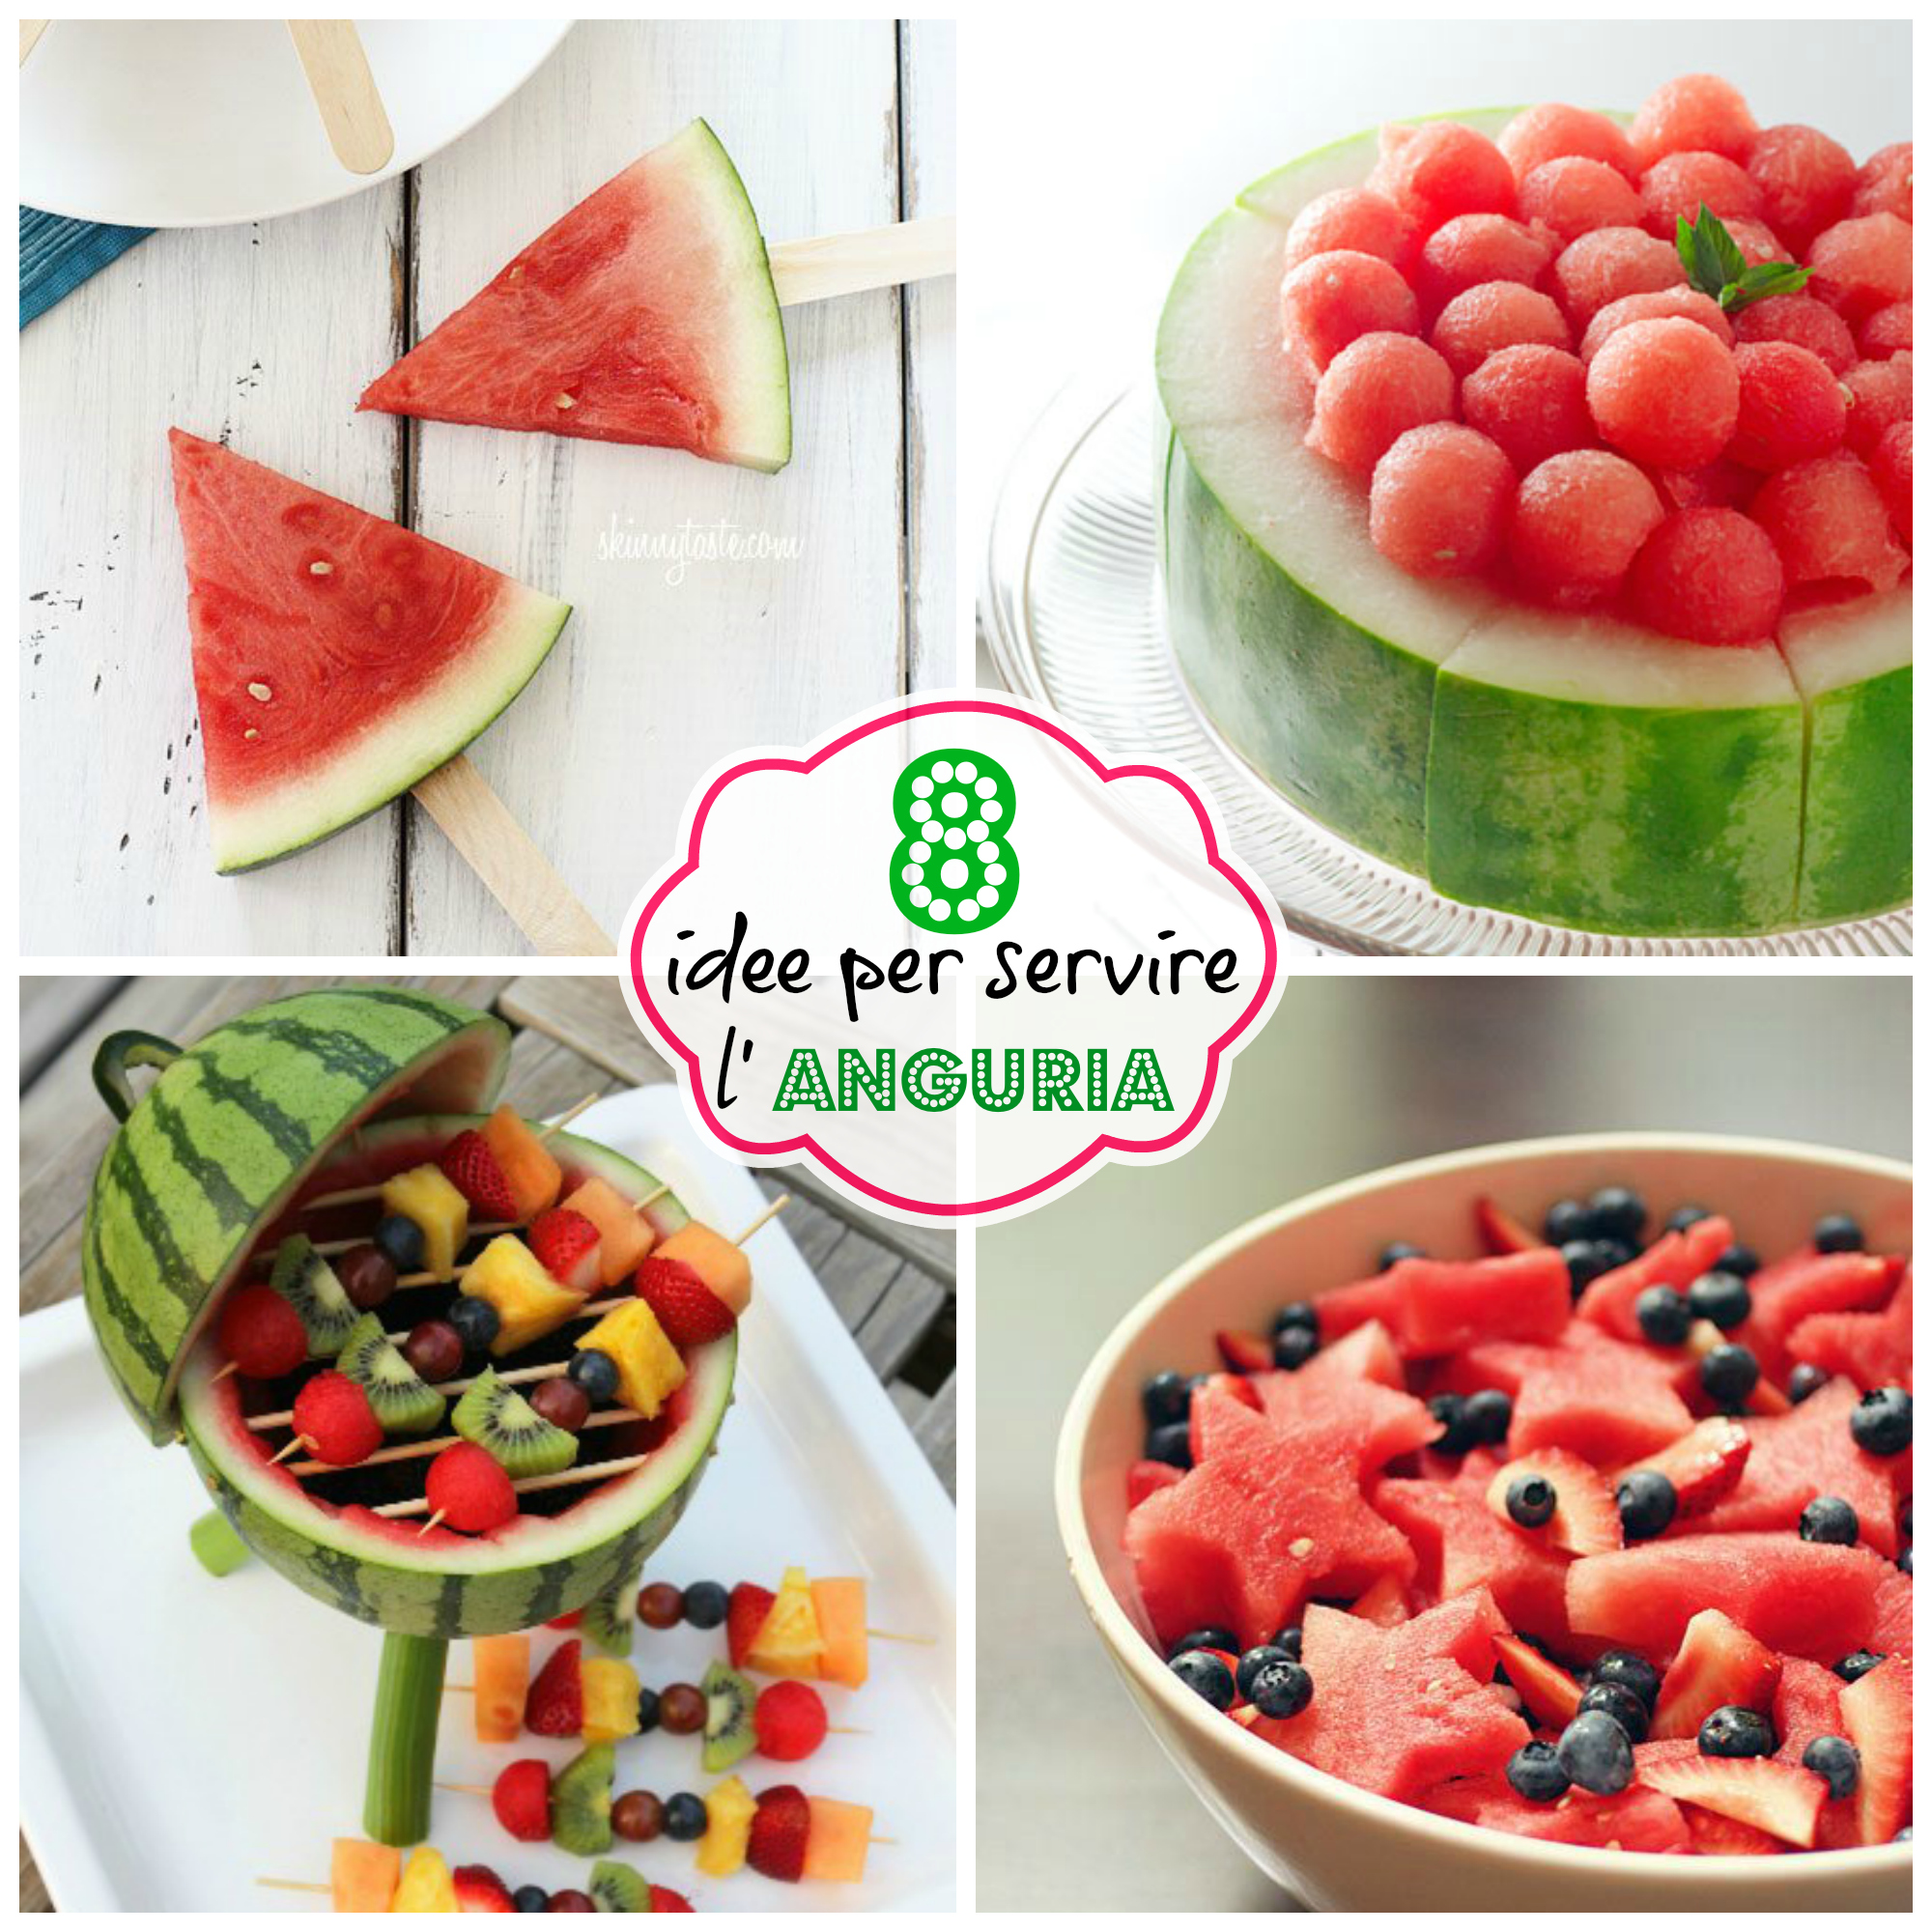 Come Servire L Anguria.8 Idee Per Servire L Anguria The Watermelonparty